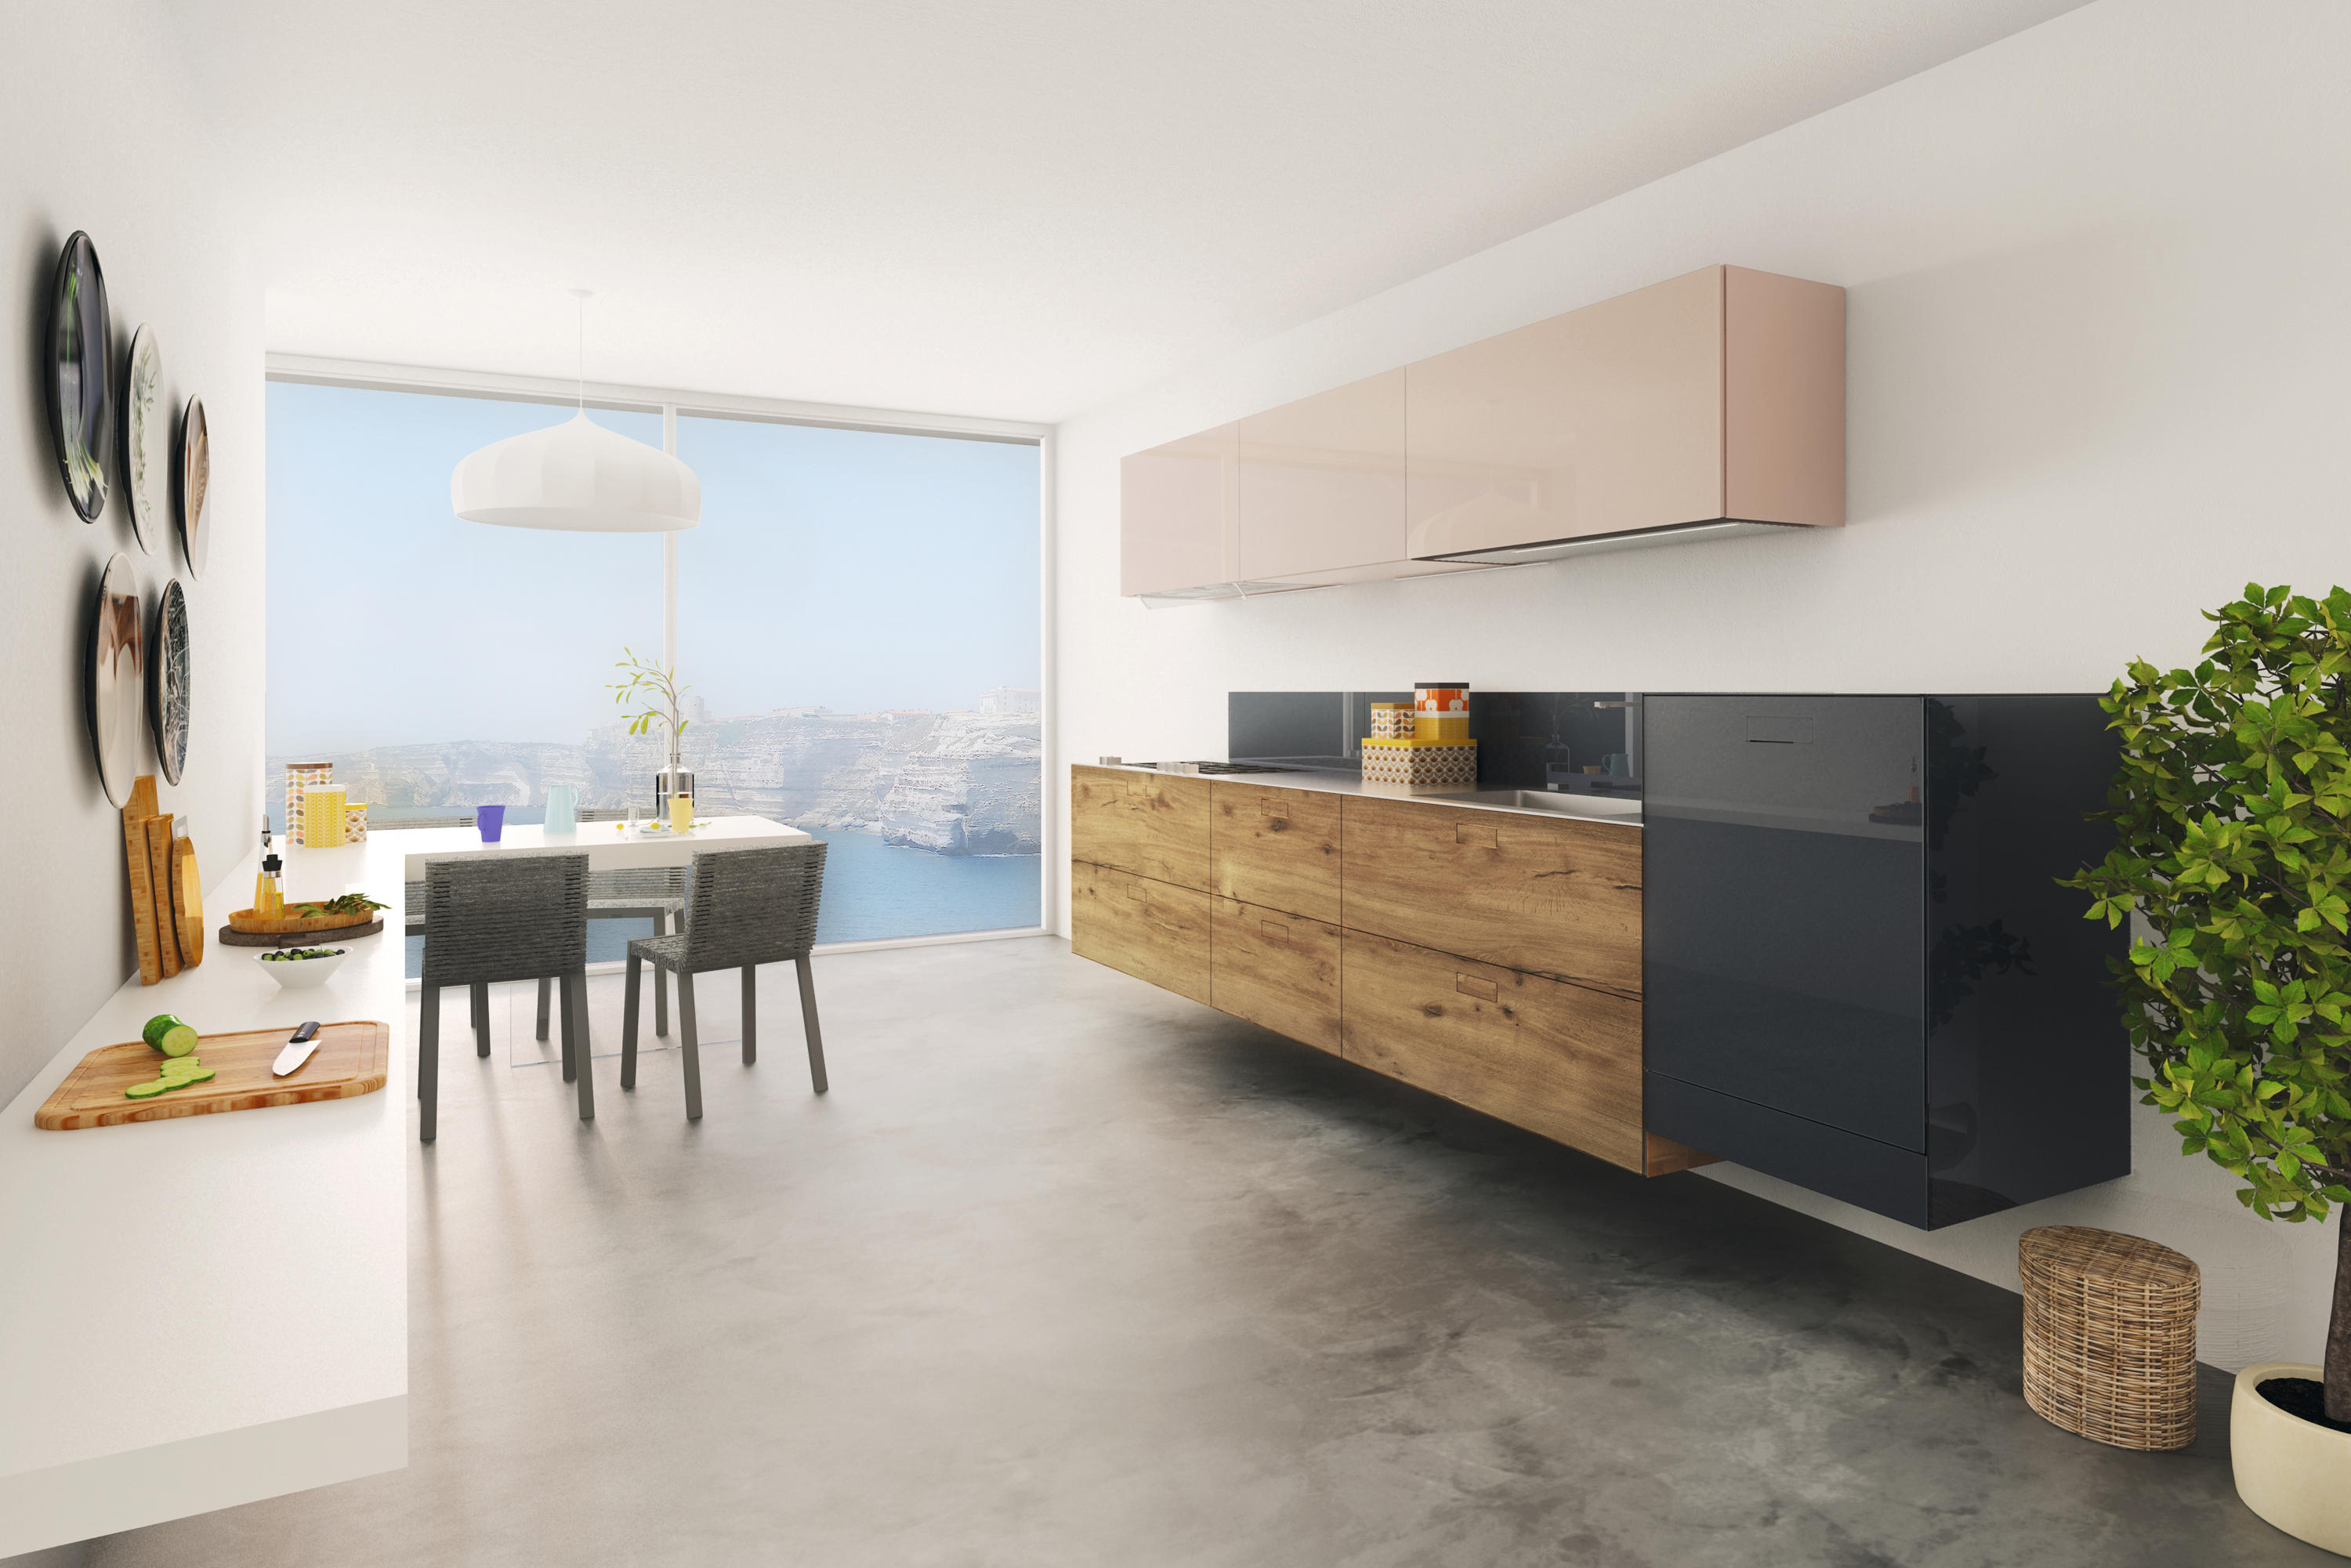 36E8_KITCHEN_WILDWOOD - Cucine a parete LAGO | Architonic